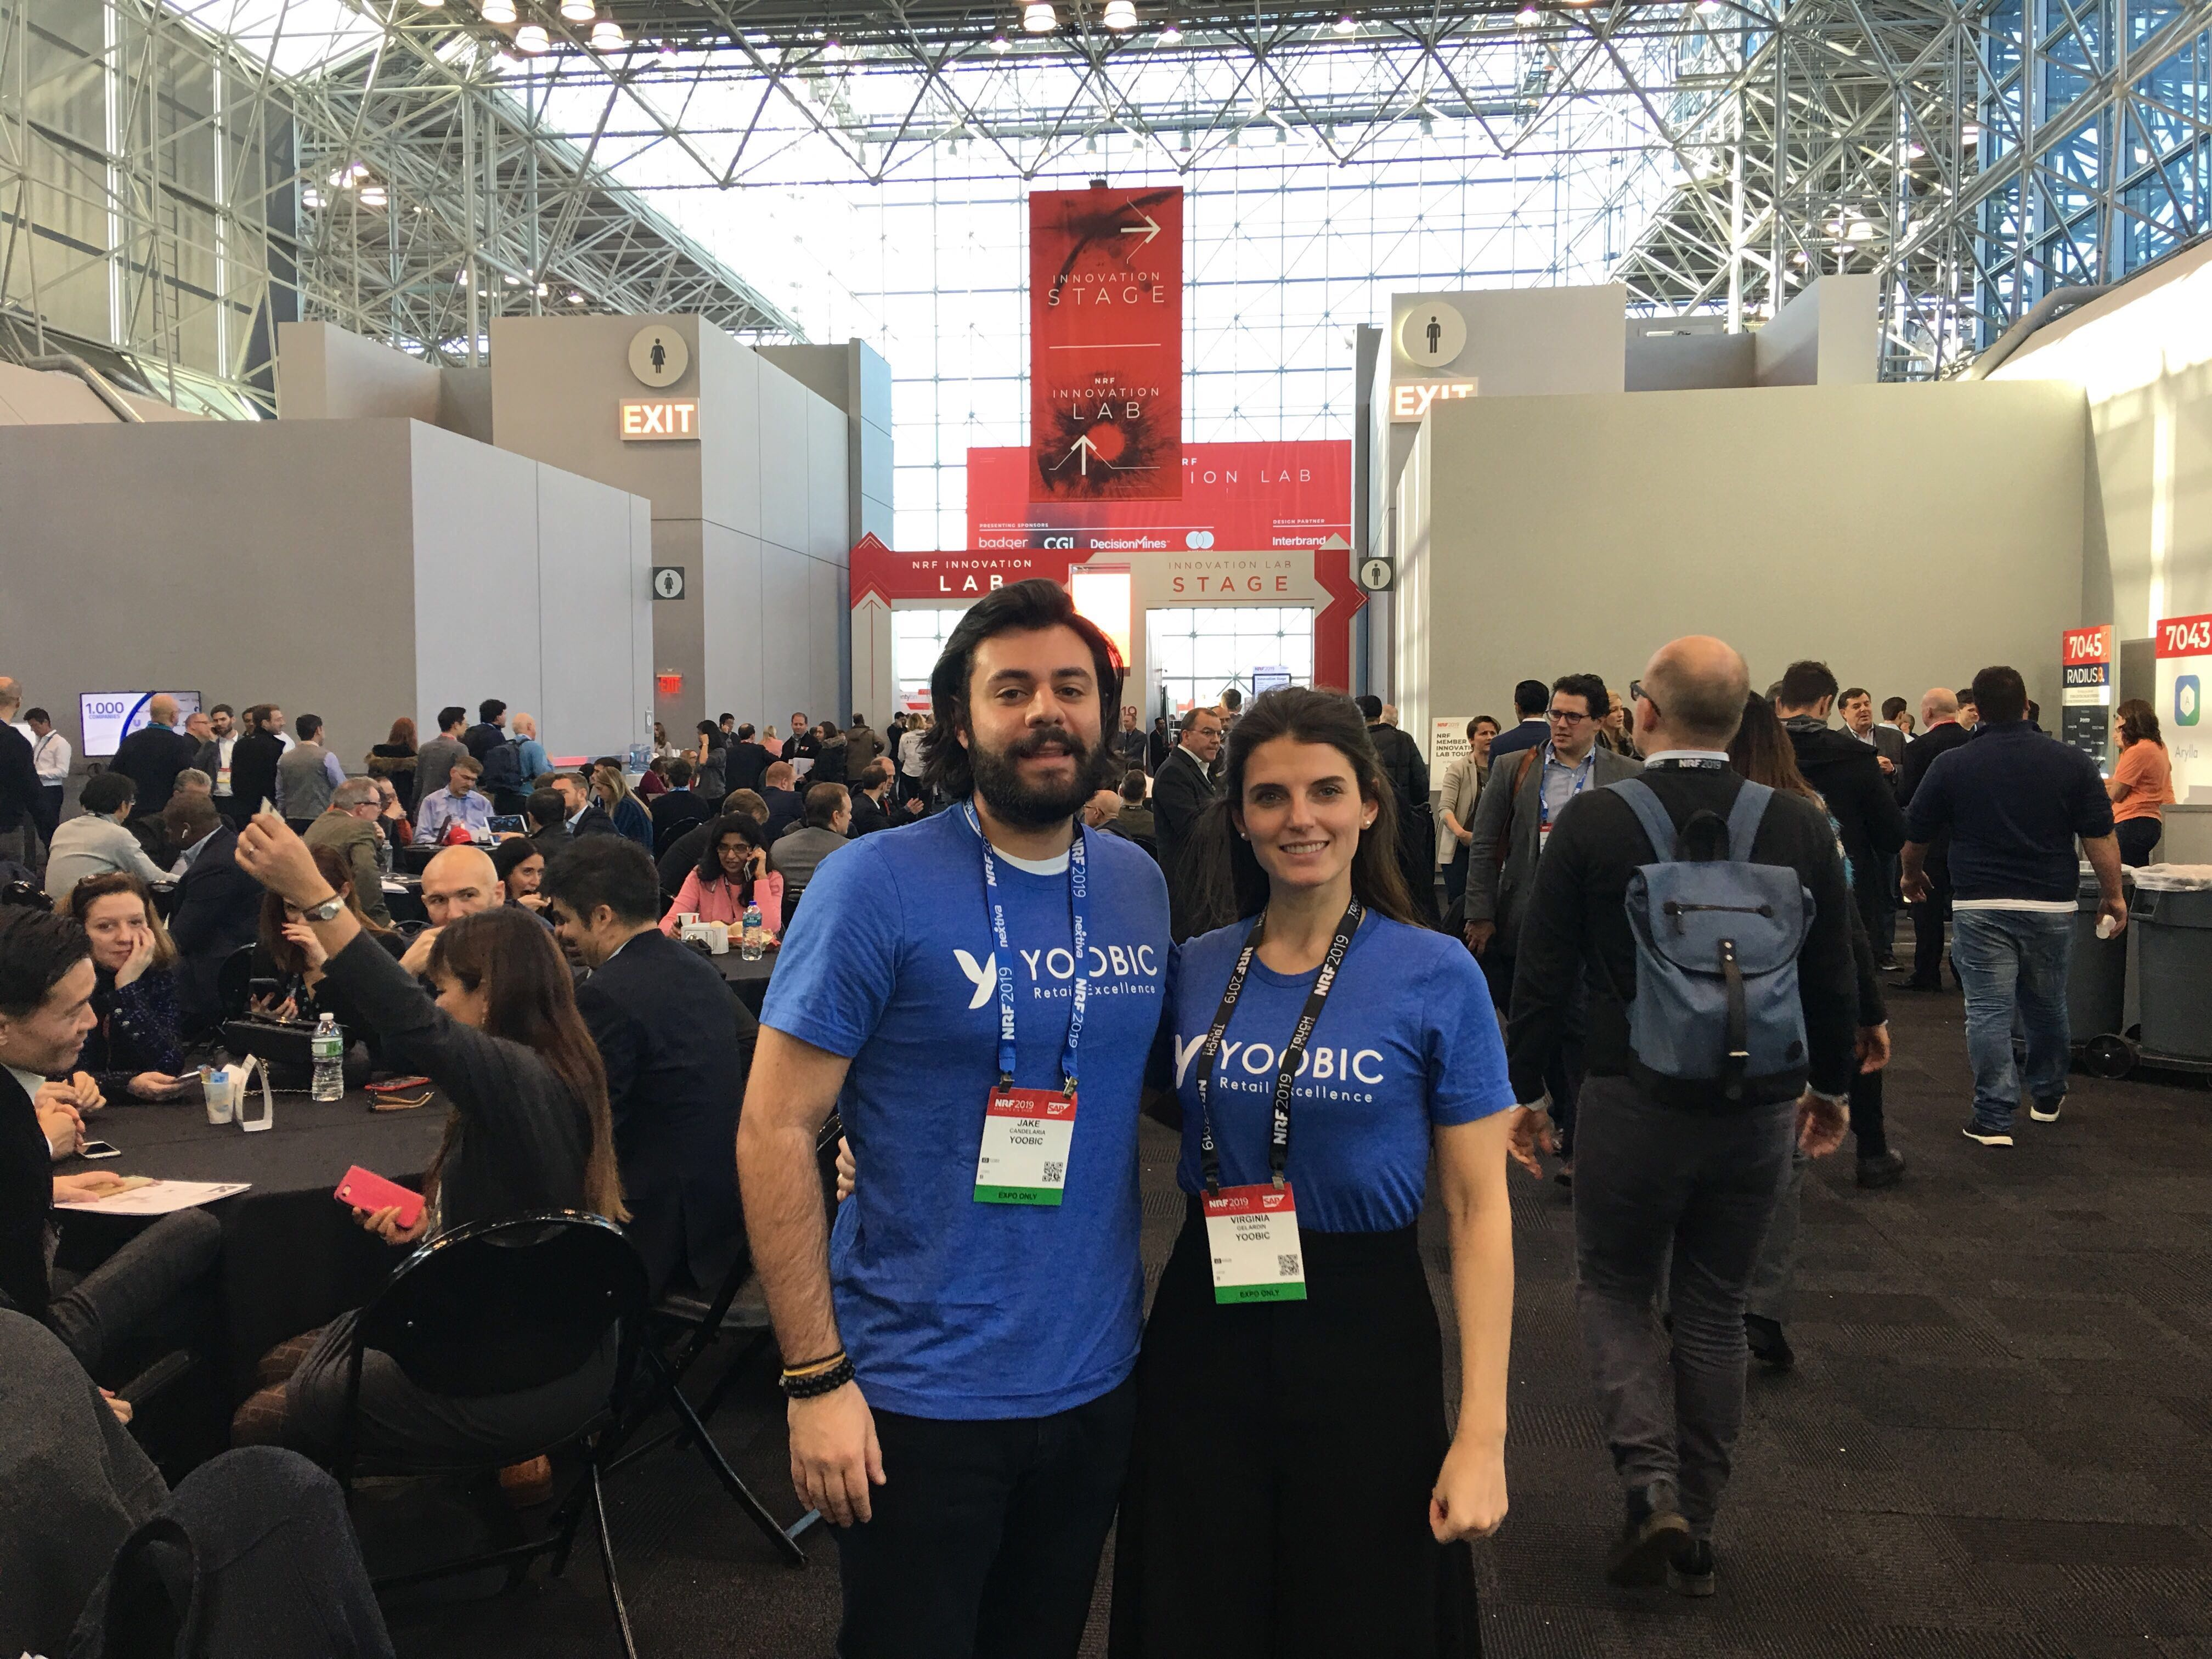 Our team at NRF